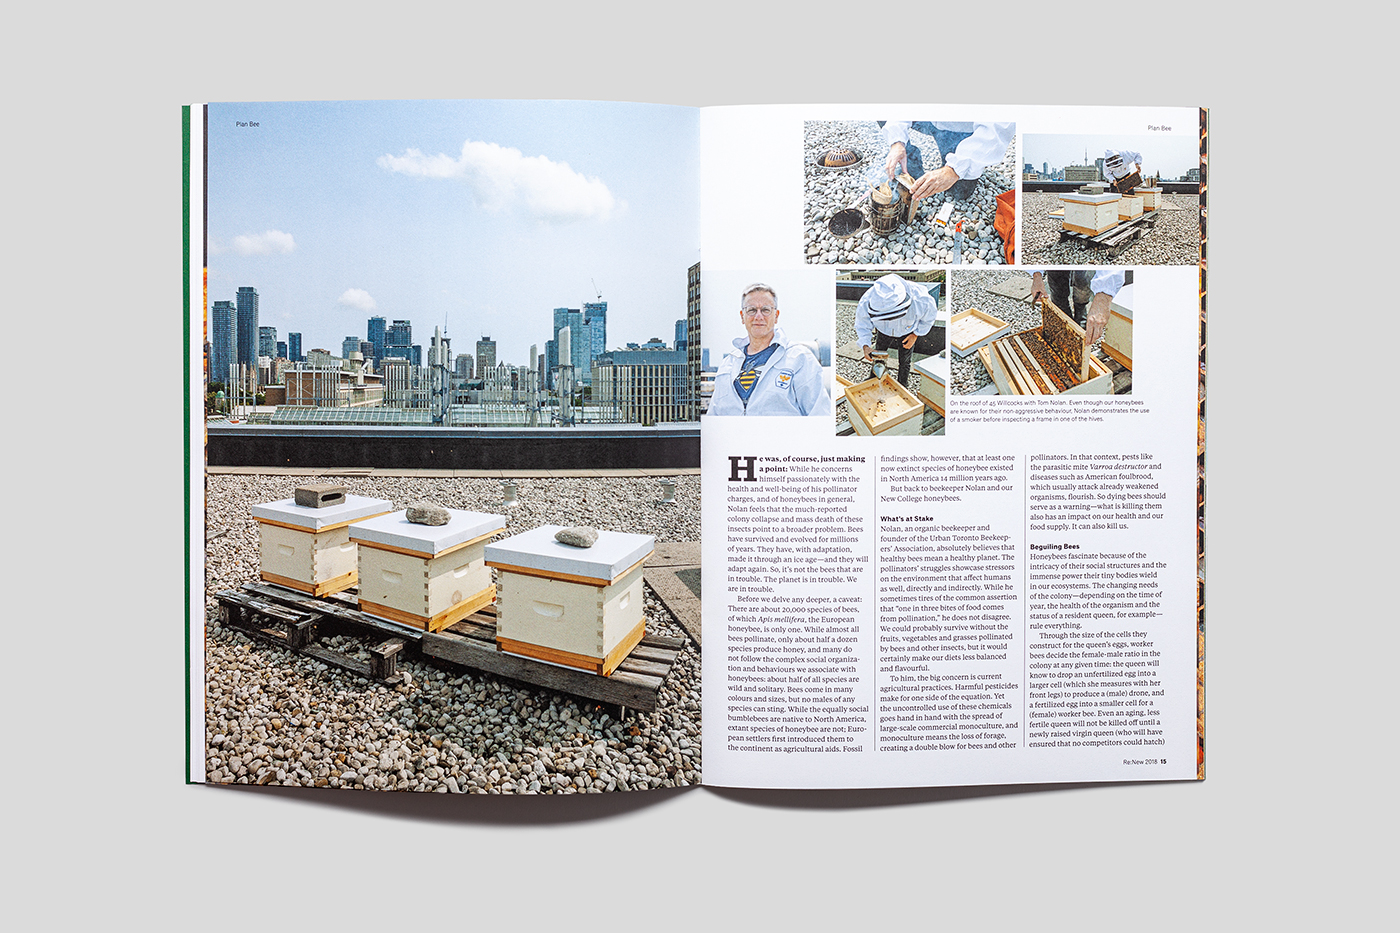 Magazine spread showing images of bees and beekeeper.